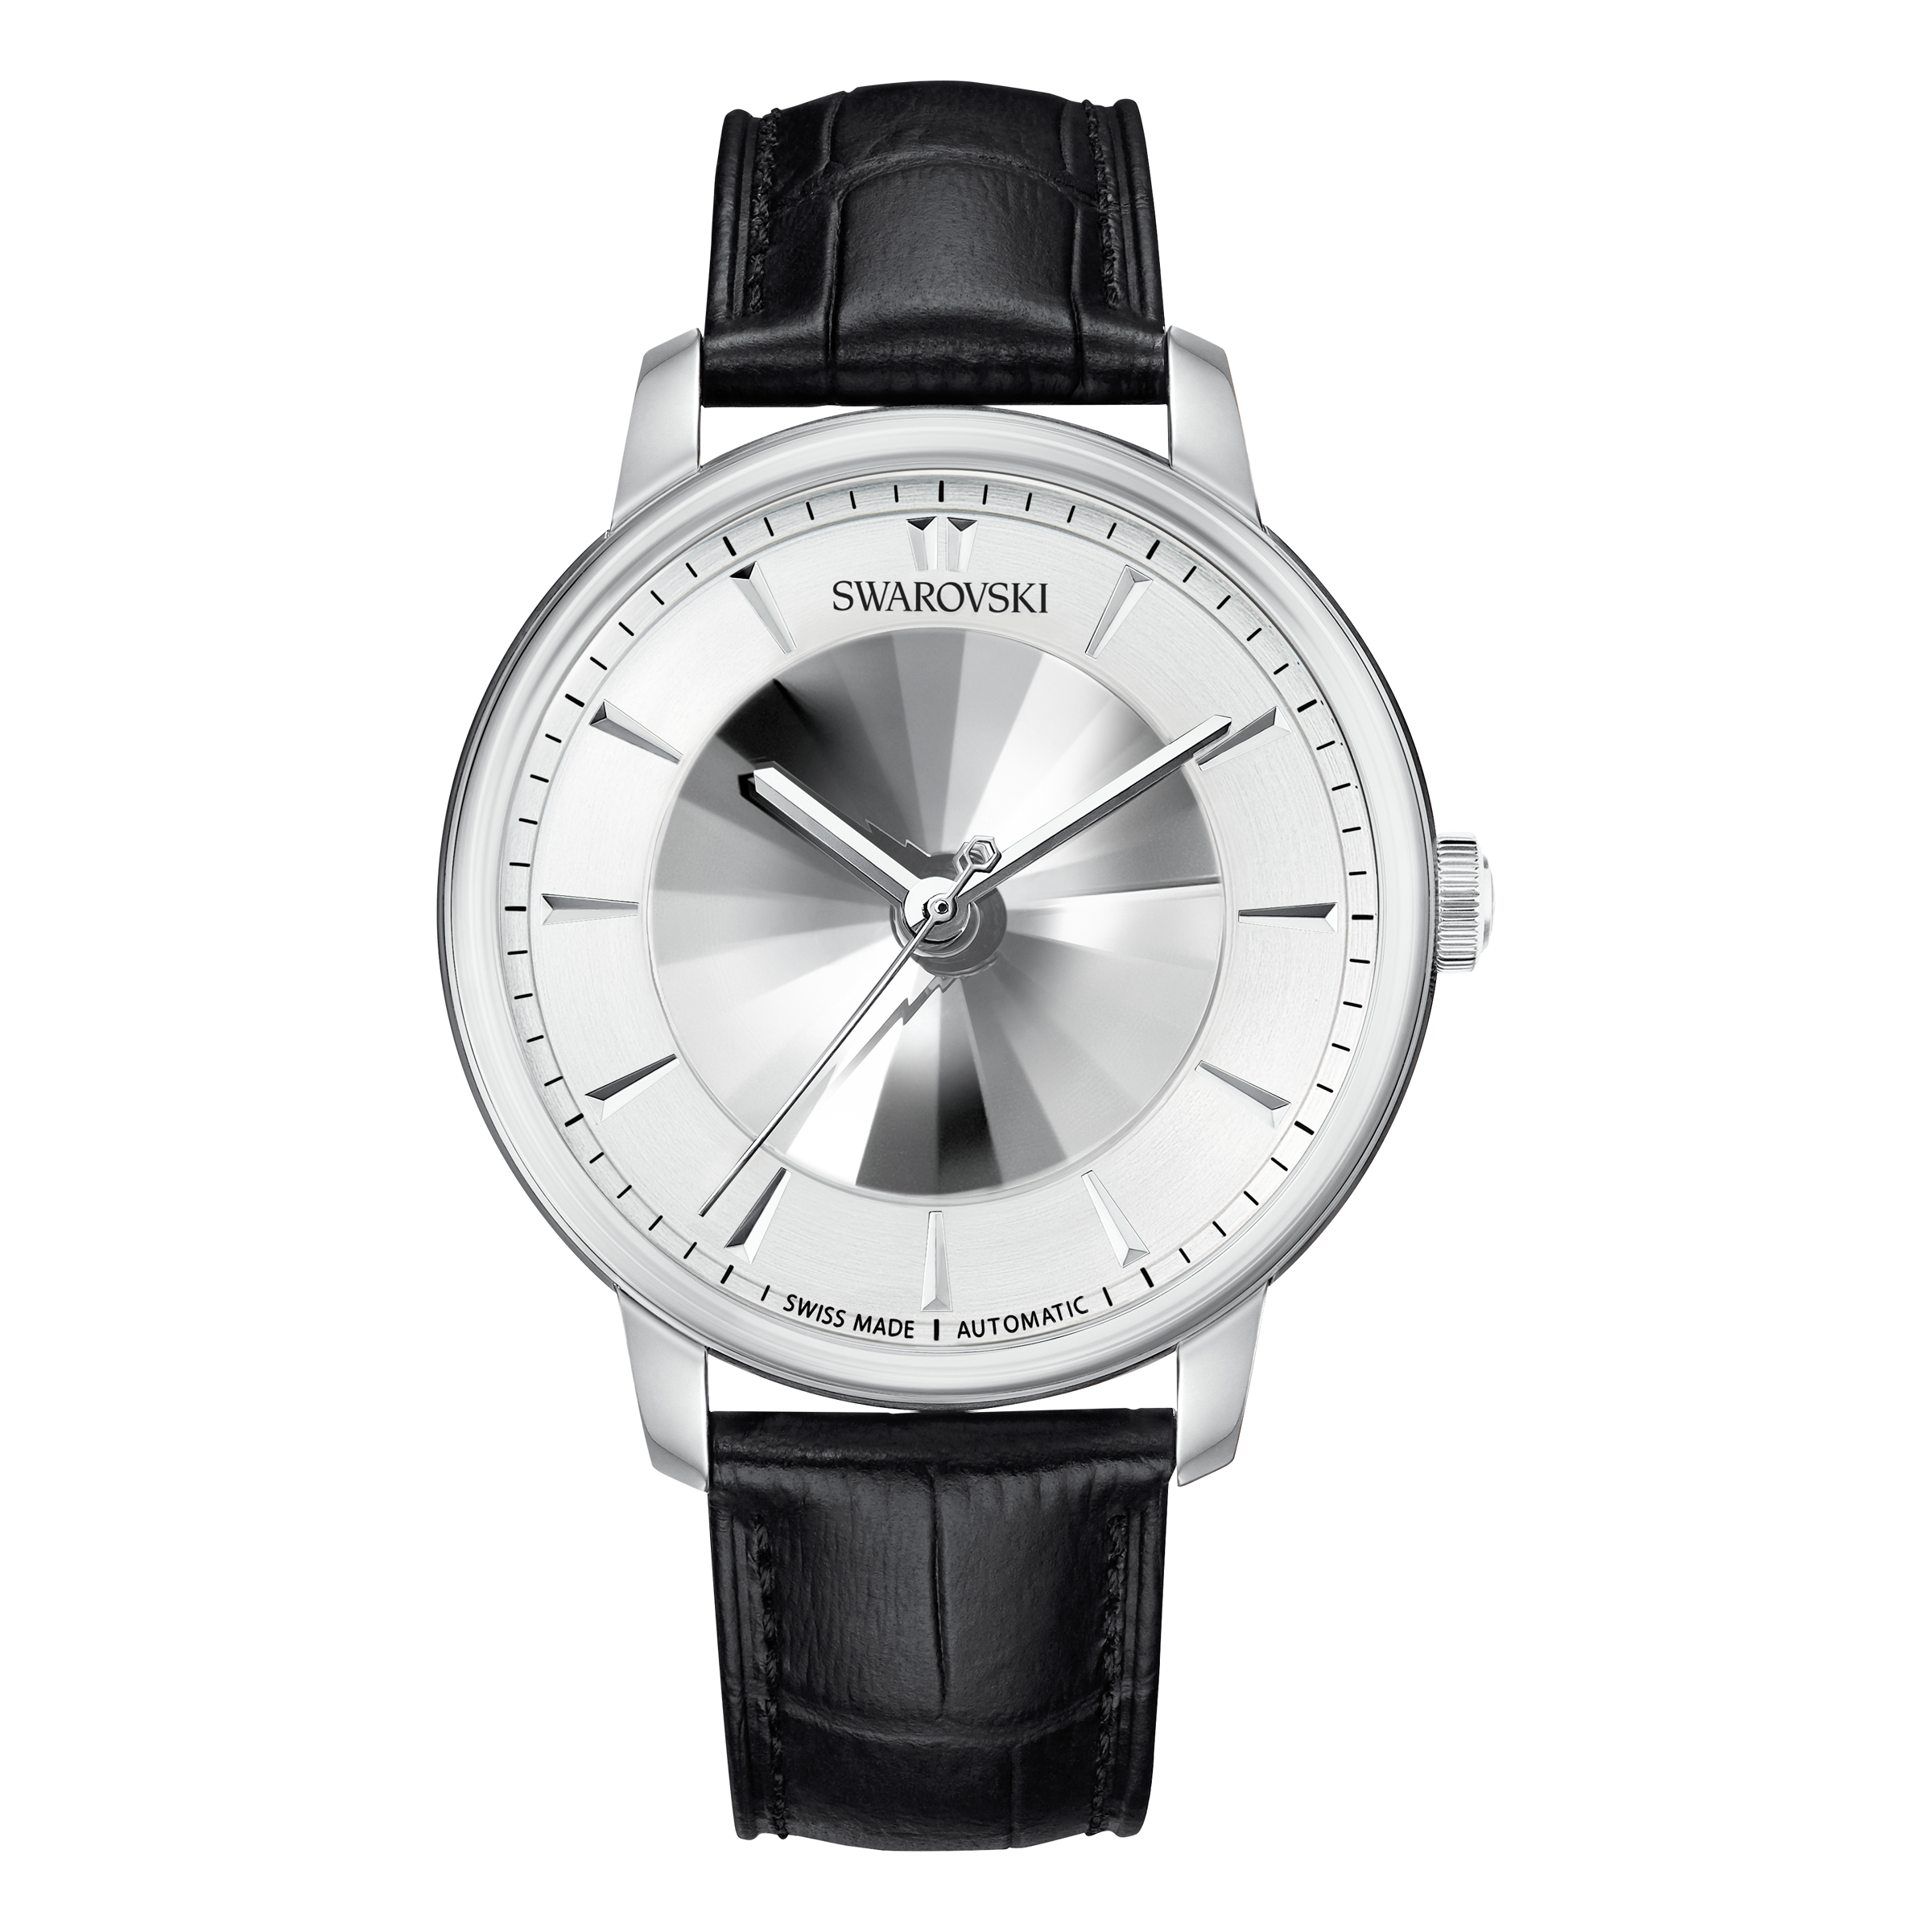 Atlantis Limited Edition Automatic Men's Watch, Leather strap, White, Stainless steel